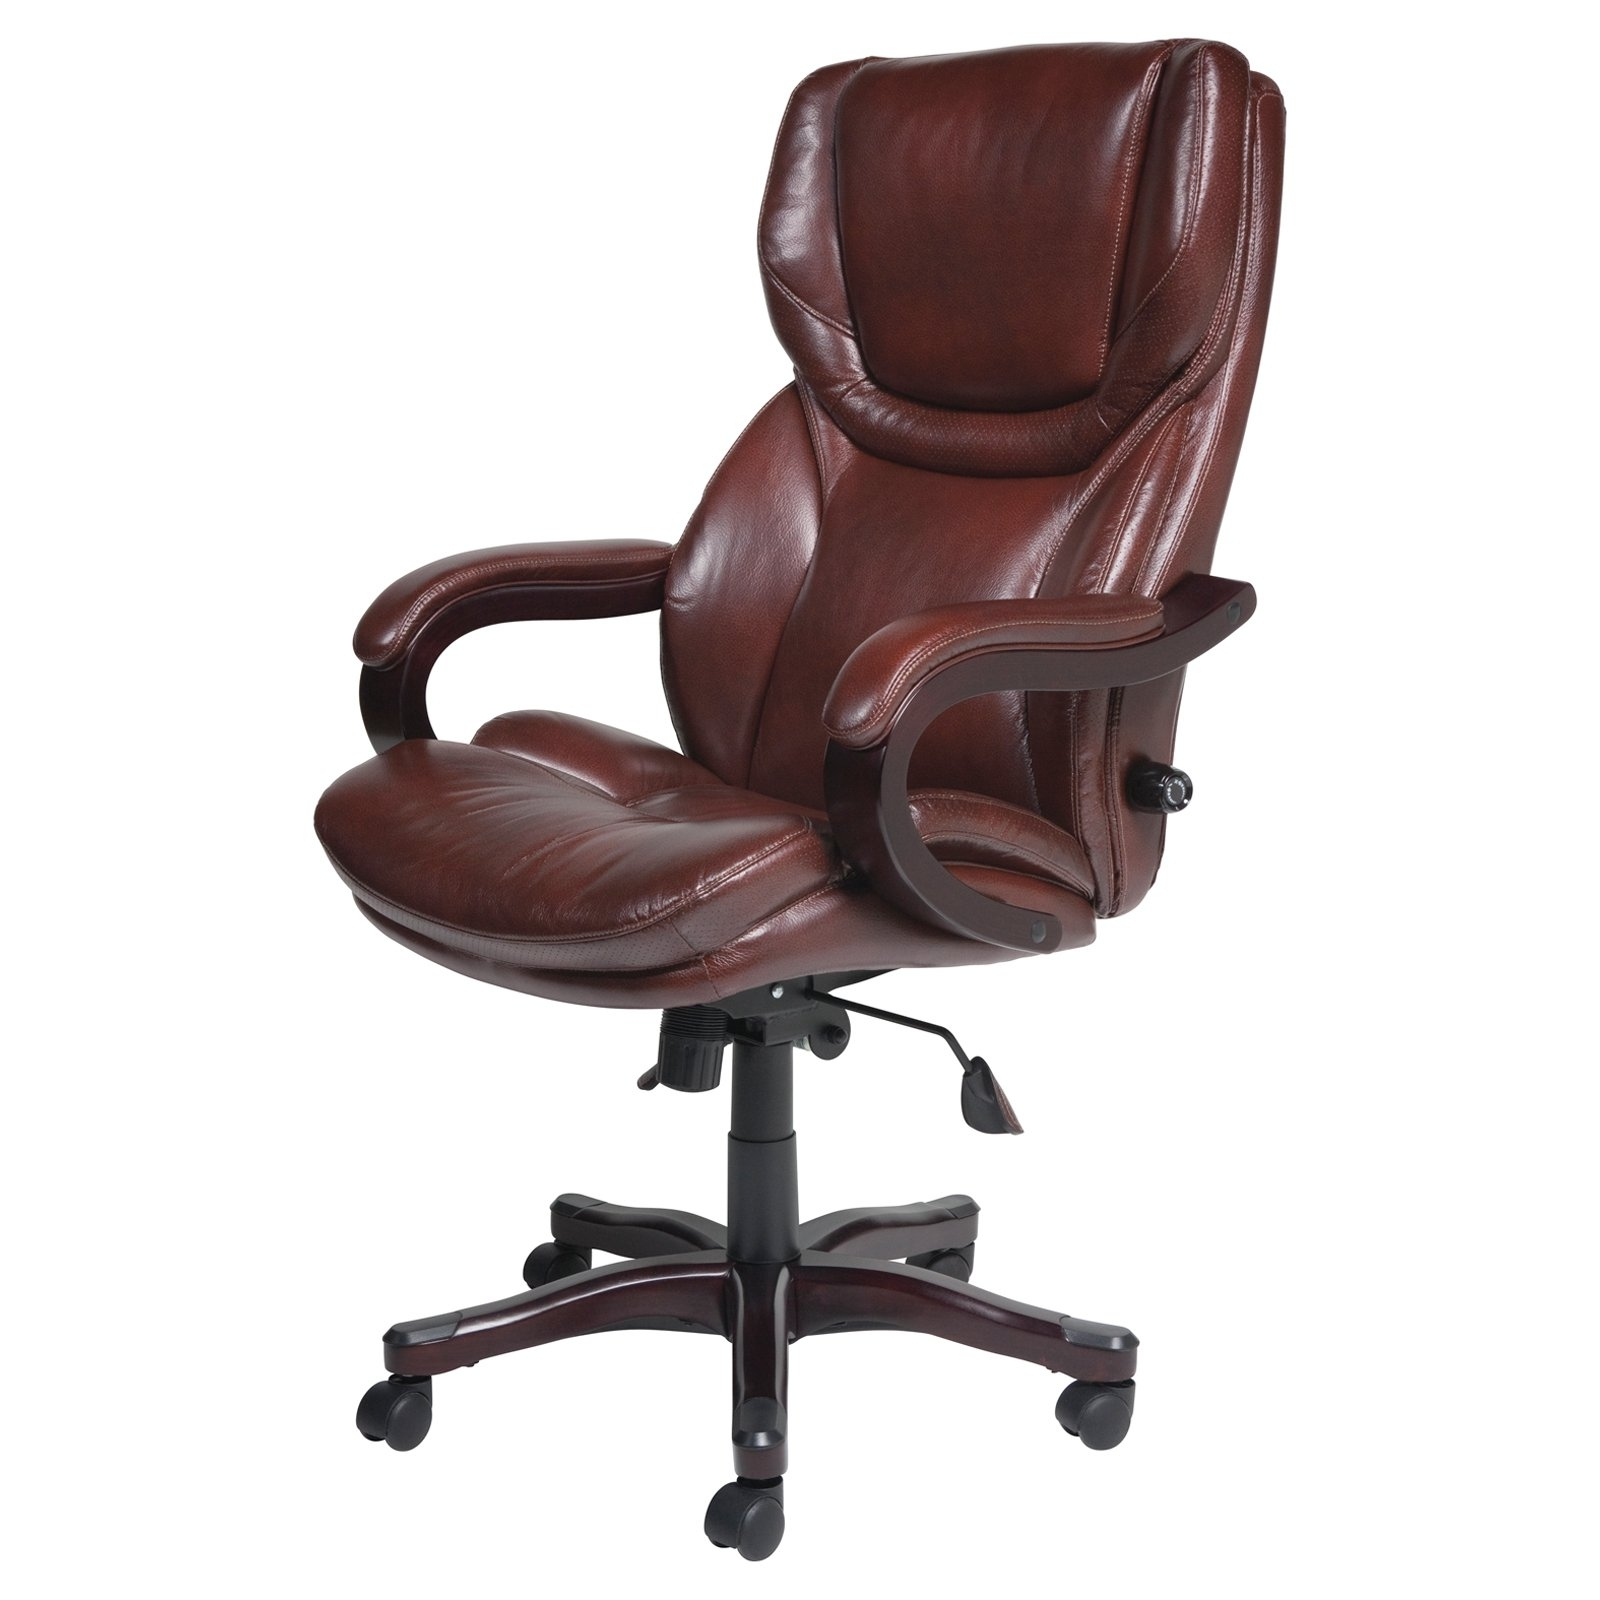 Chair : Ergonomic Black Leather Executive Office Chair Verona With Recent Red Leather Executive Office Chairs (View 3 of 20)